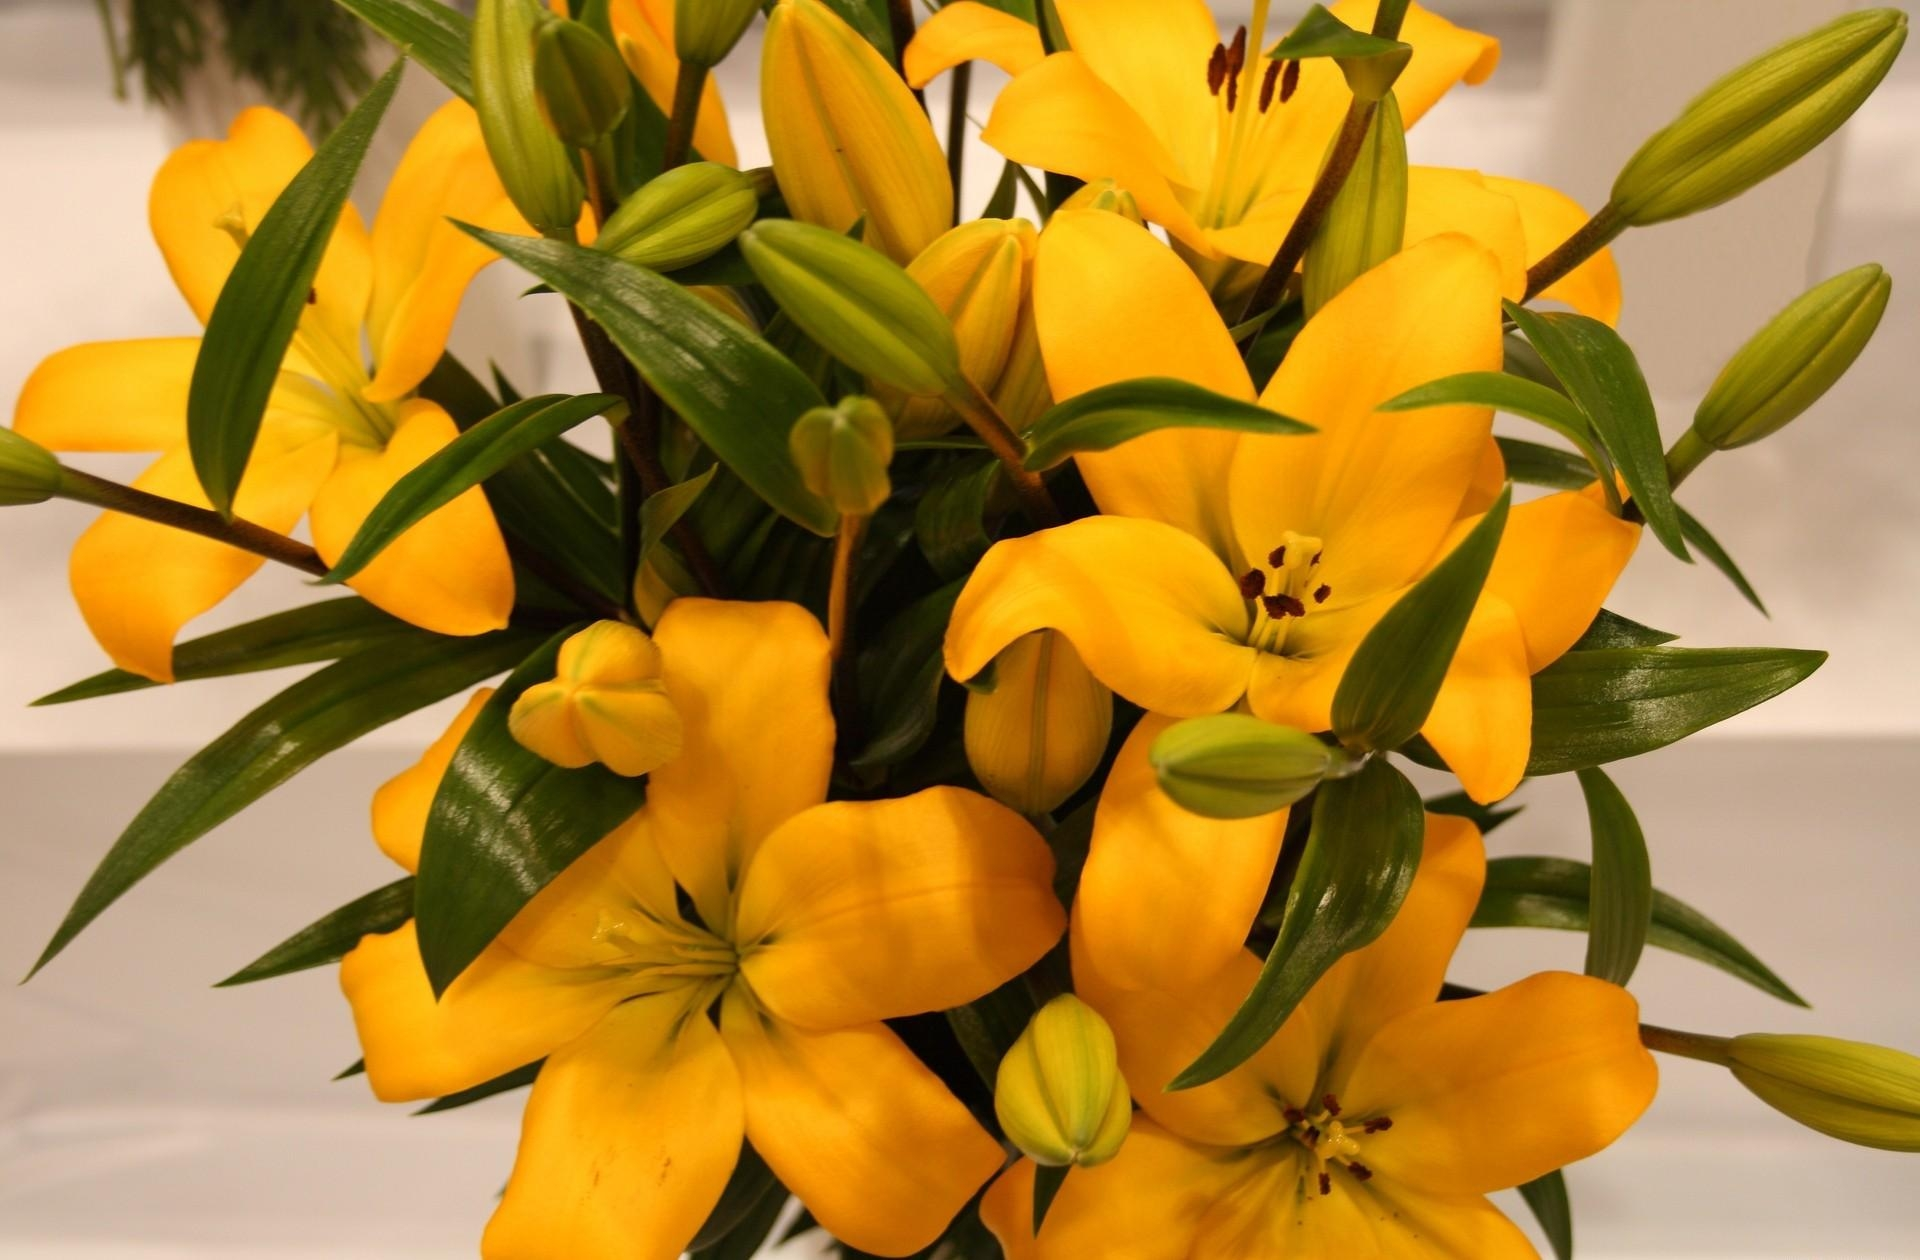 Download mobile wallpaper Flowers, Leaves, Lilies, Buds for free.